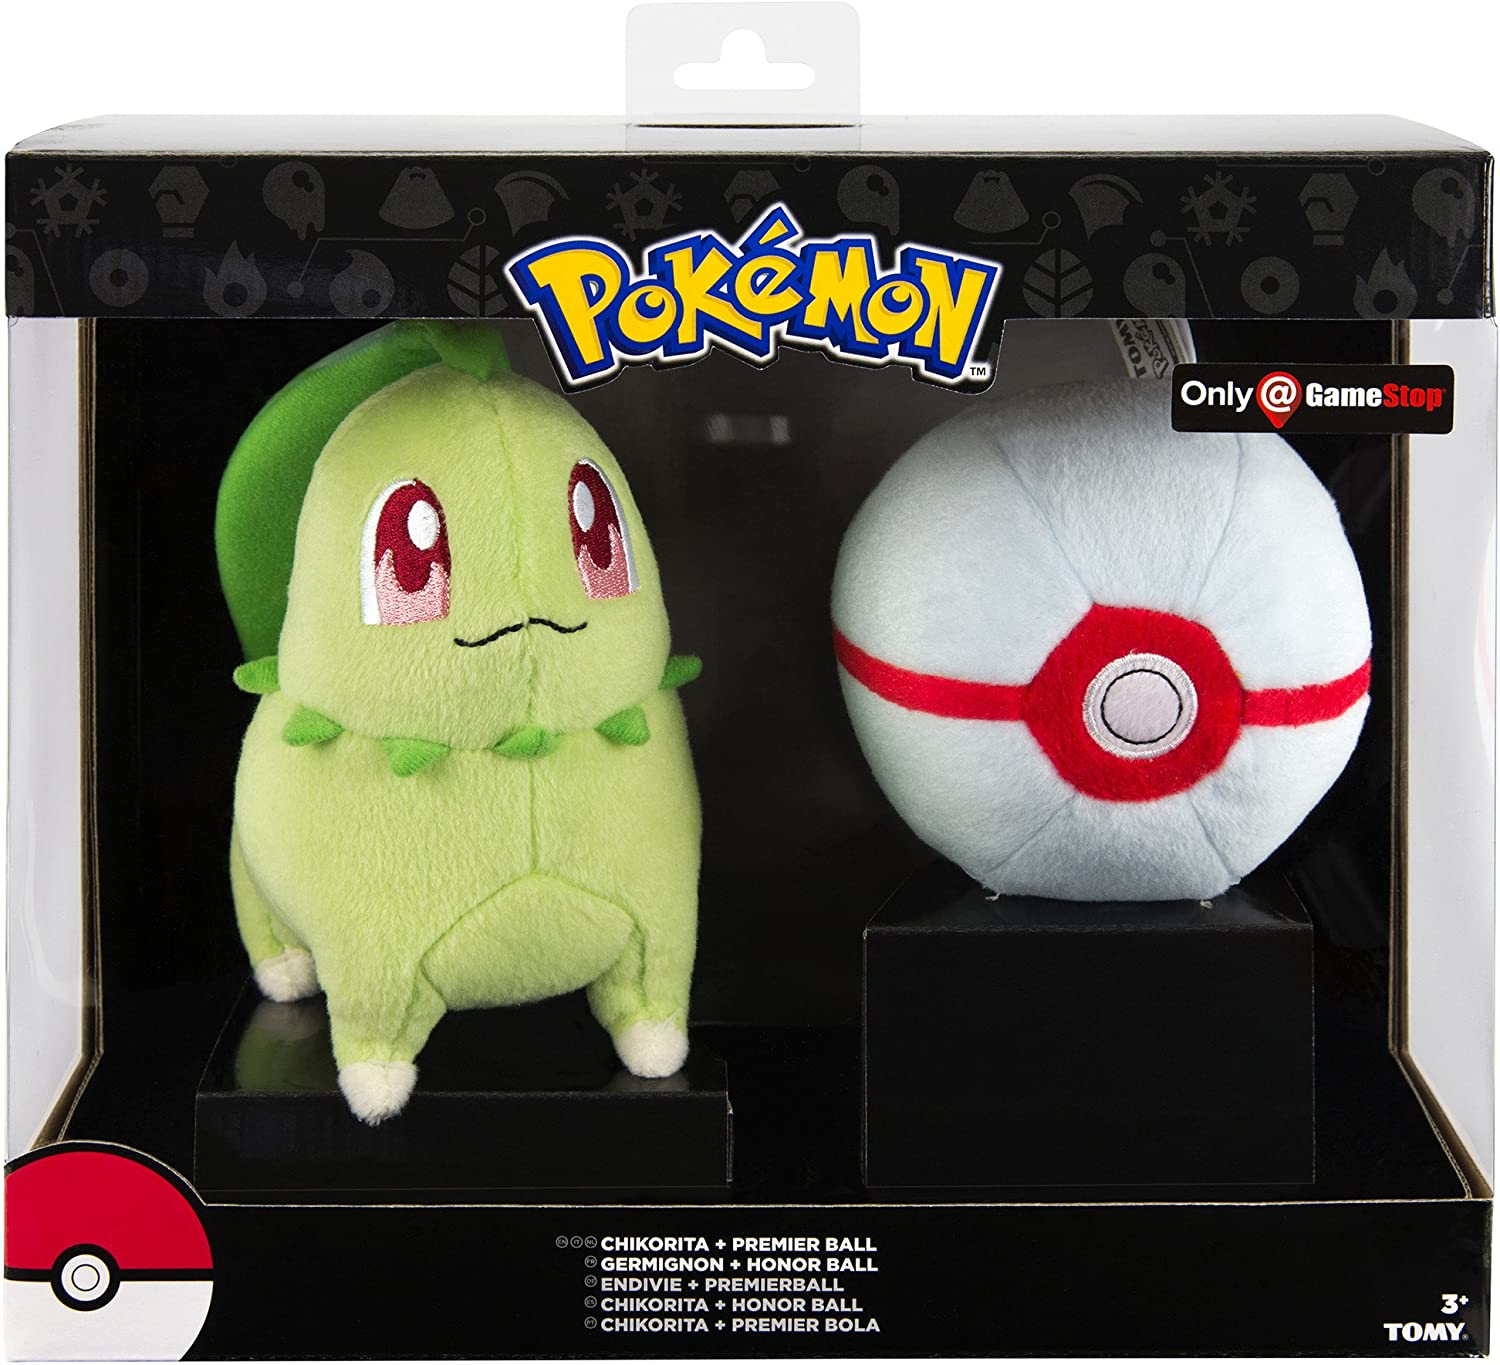 Pokemon T19412 Chikorita and Premier Pokeball Plush in gift box